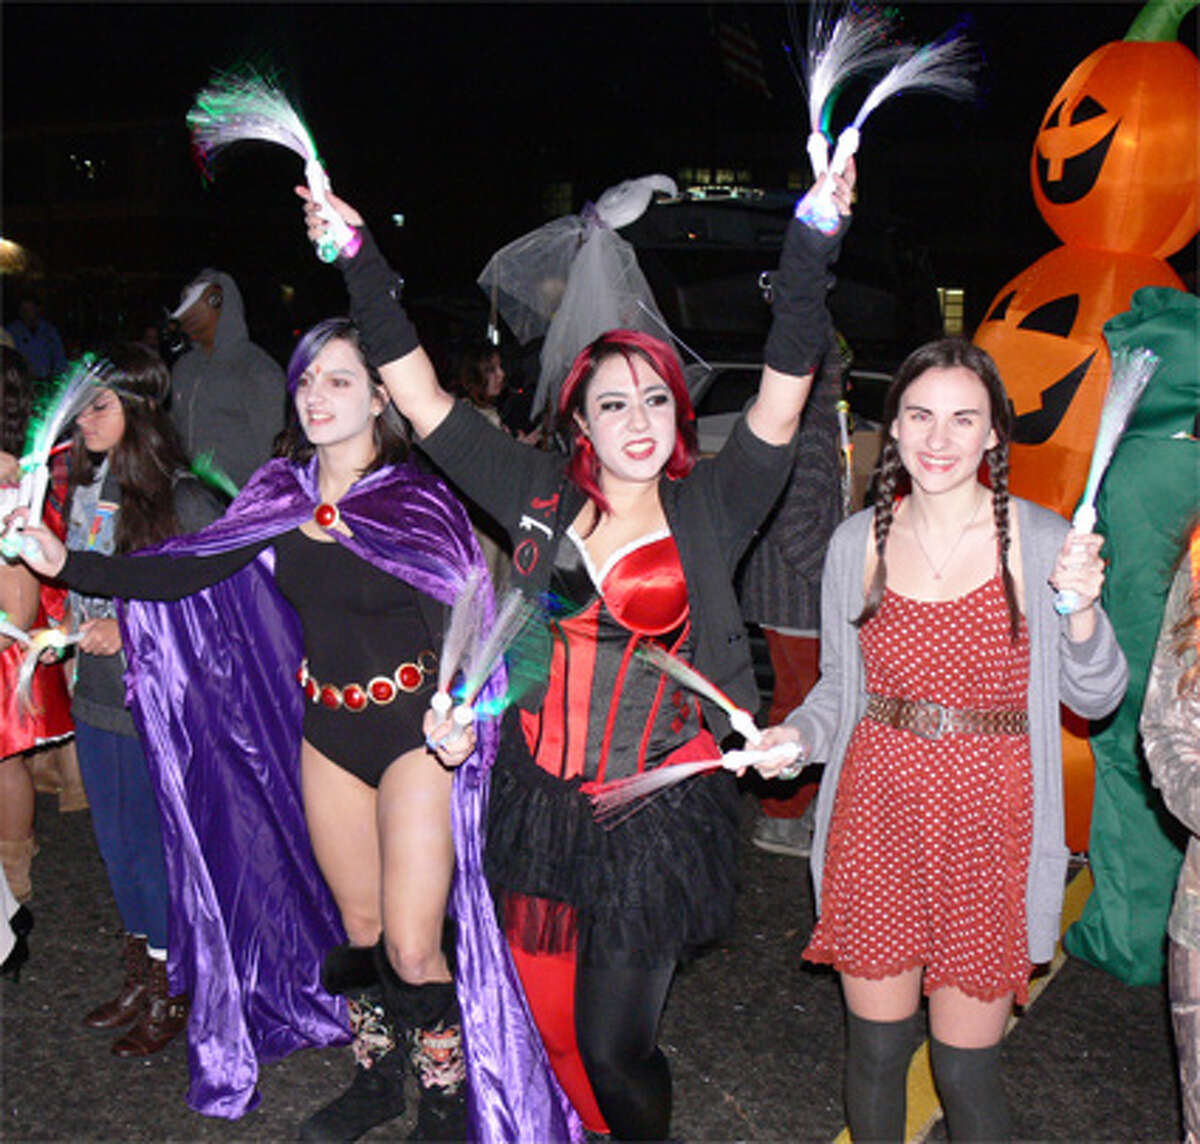 A group of girls dance to the deejay music in their costumes at the trick-or-trunk event.